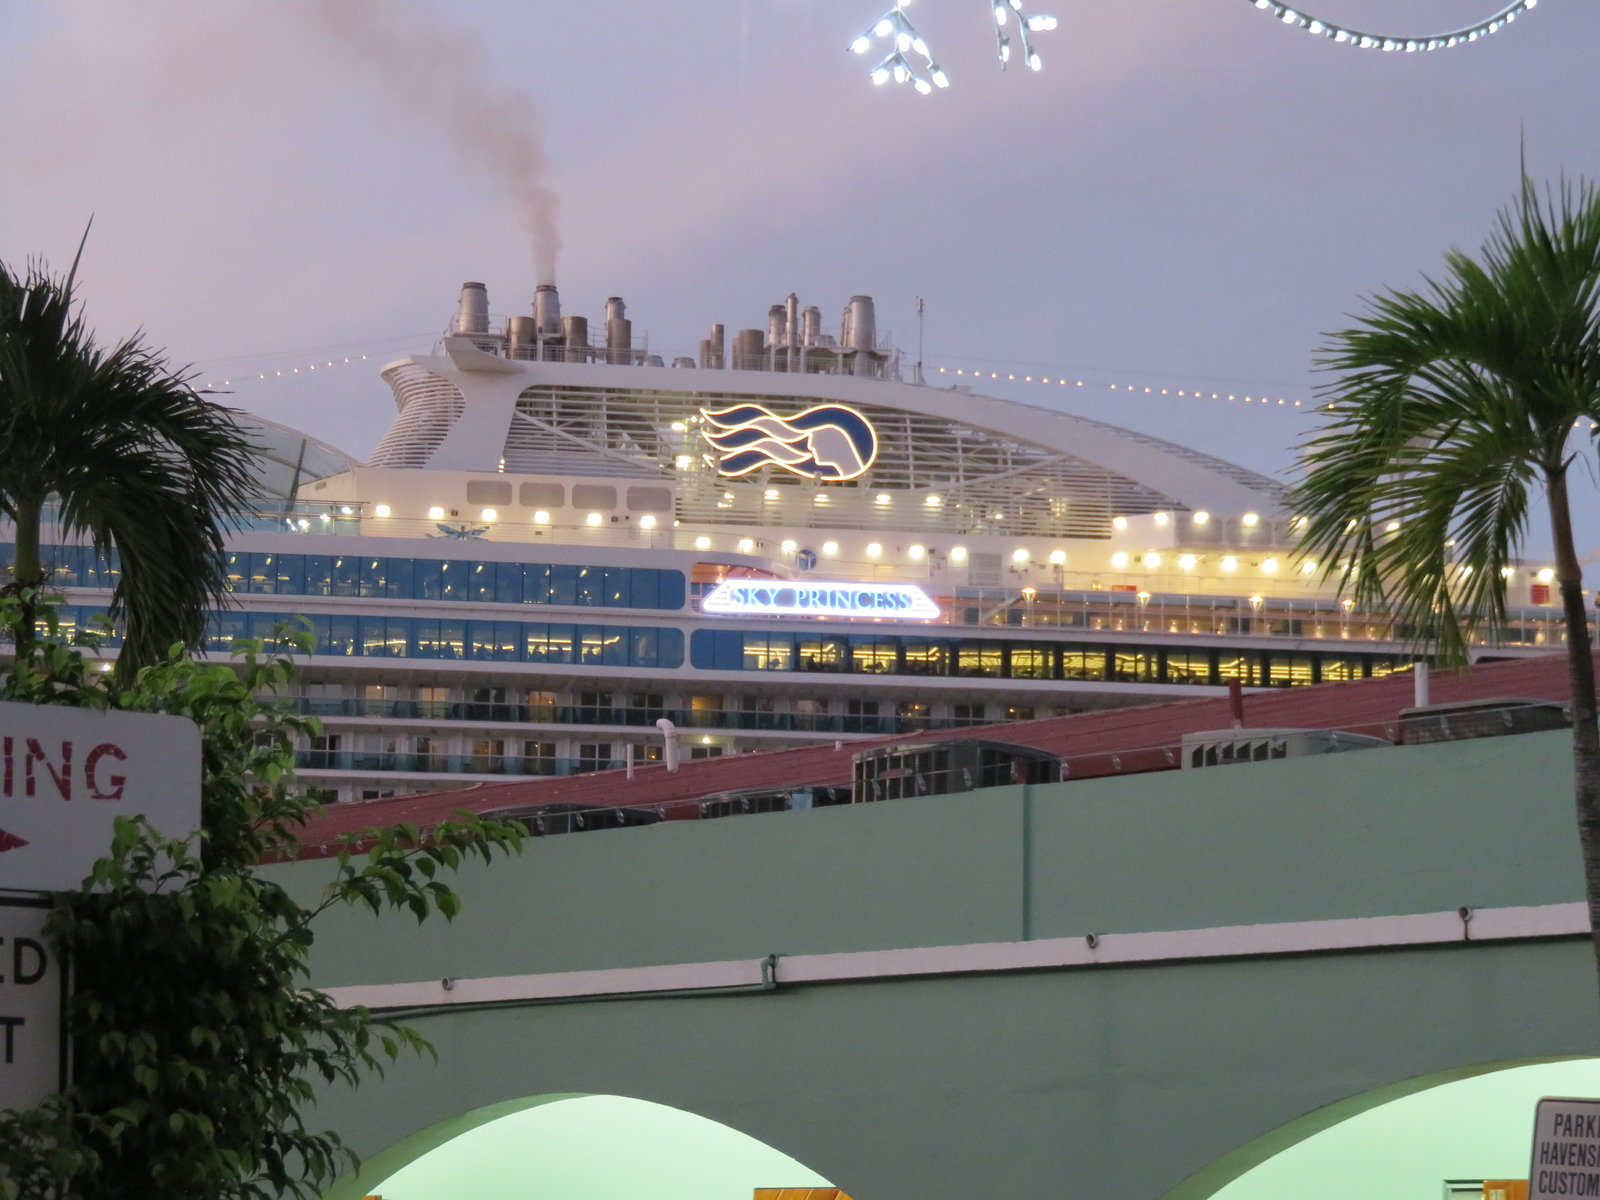 SKY Princess - Docked in St. Thomas